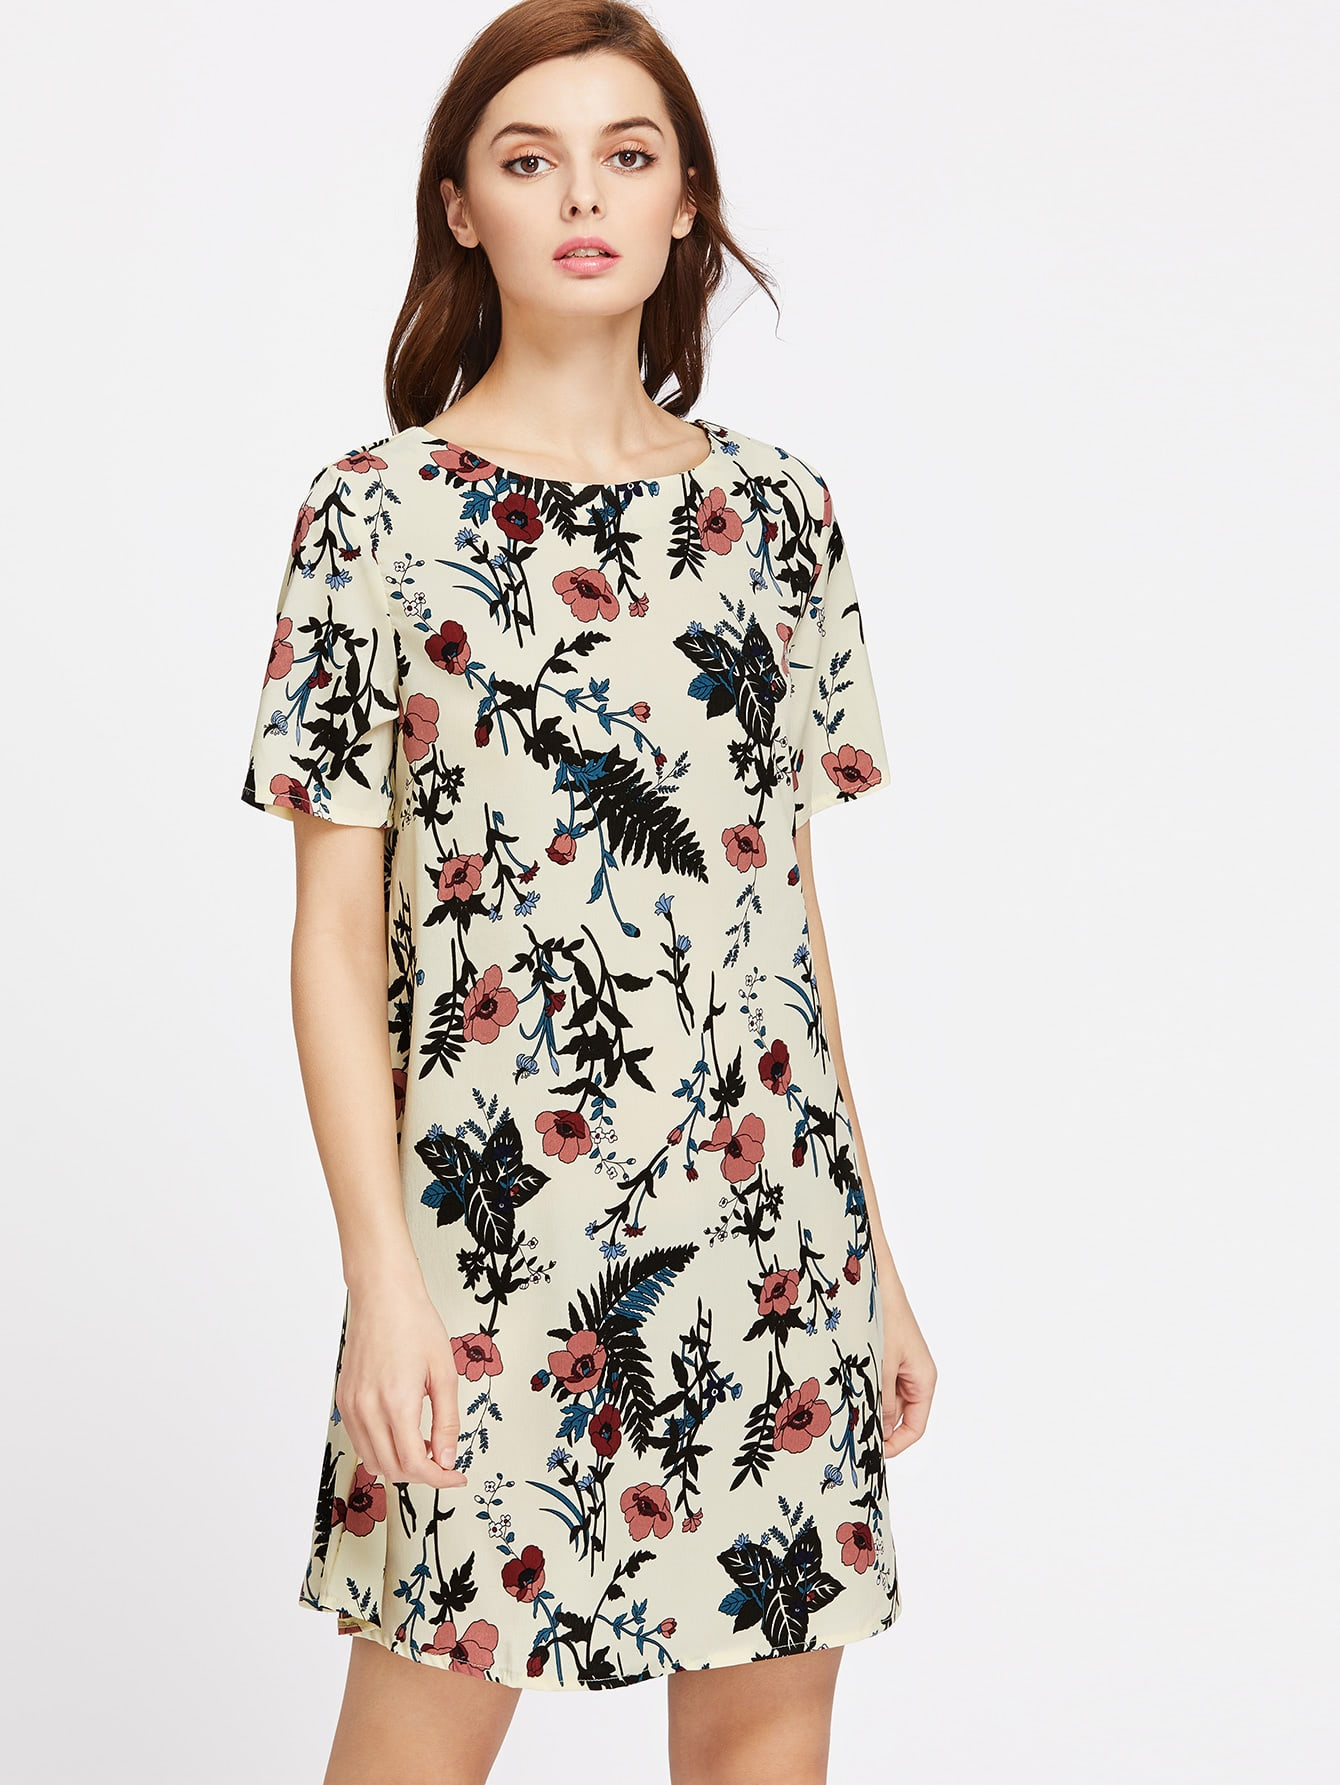 Discover the perfect summer dress with ASOS. Shop for floral sundresses, cover-ups & long summer dresses for your essential vacation packing with ASOS.